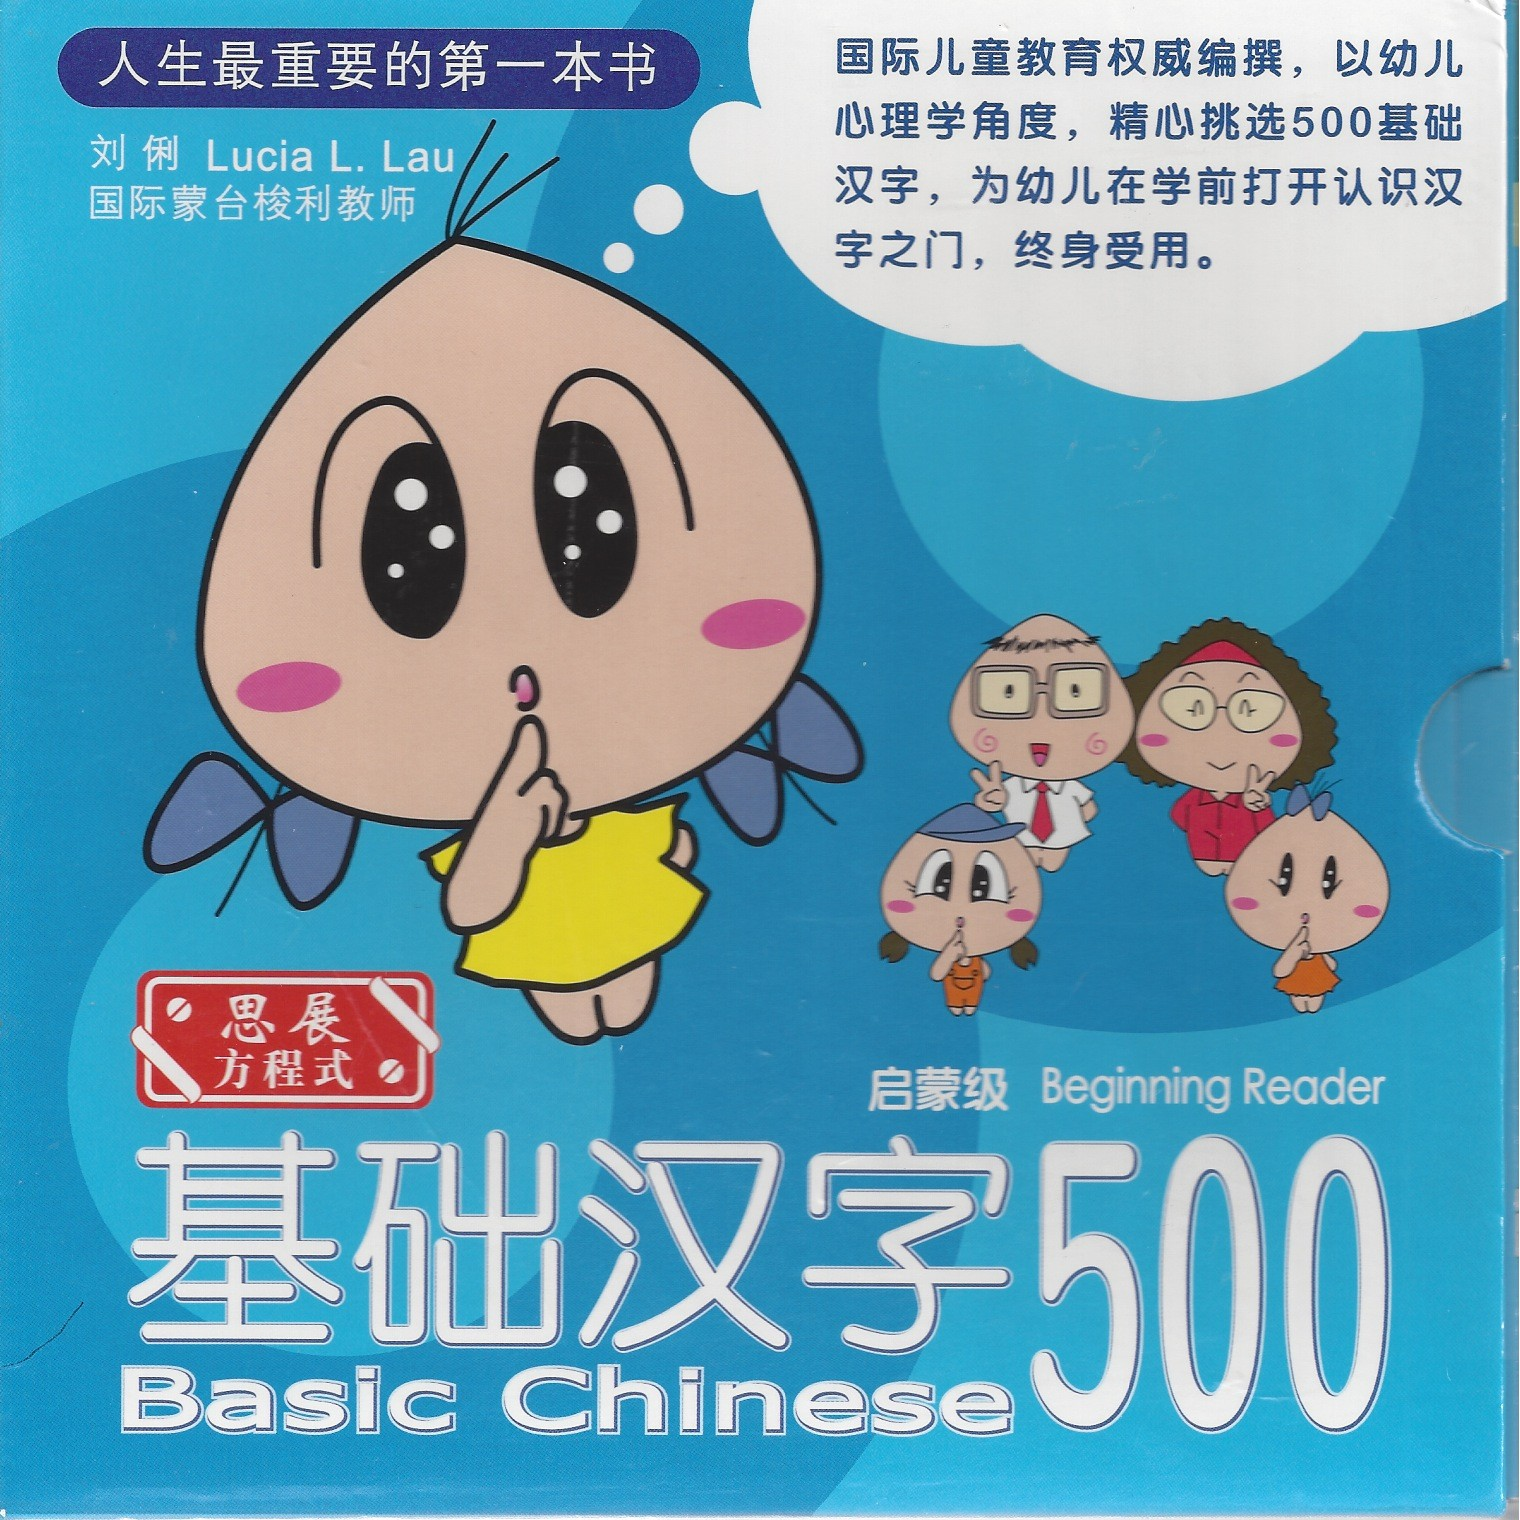 Basic Chinese 500 - Beginner Reading Box Set